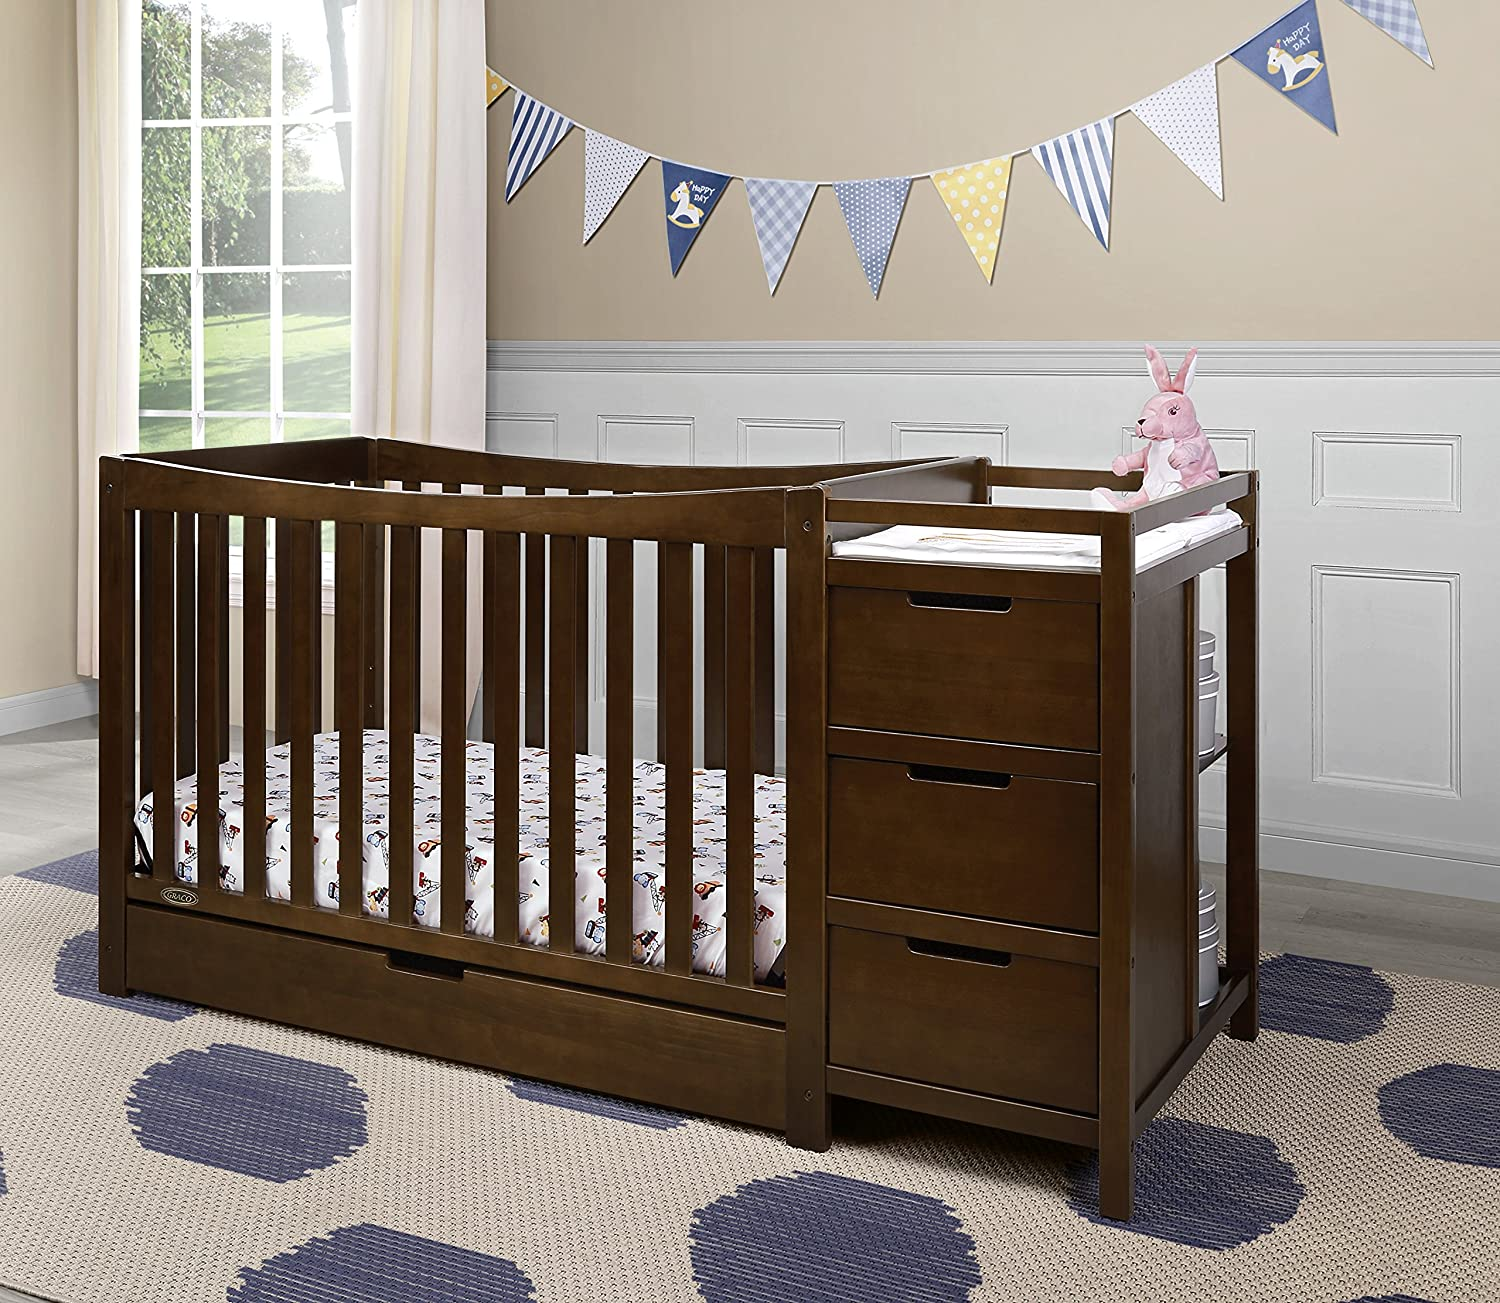 Graco Remi 4-in-1 Convertible Crib and Changer Three Position Adjustable Height Mattress Assembly Req Easily Converts to Toddler Bed Day Bed or Full Bed Mattress Not Included Pebble Gray//White